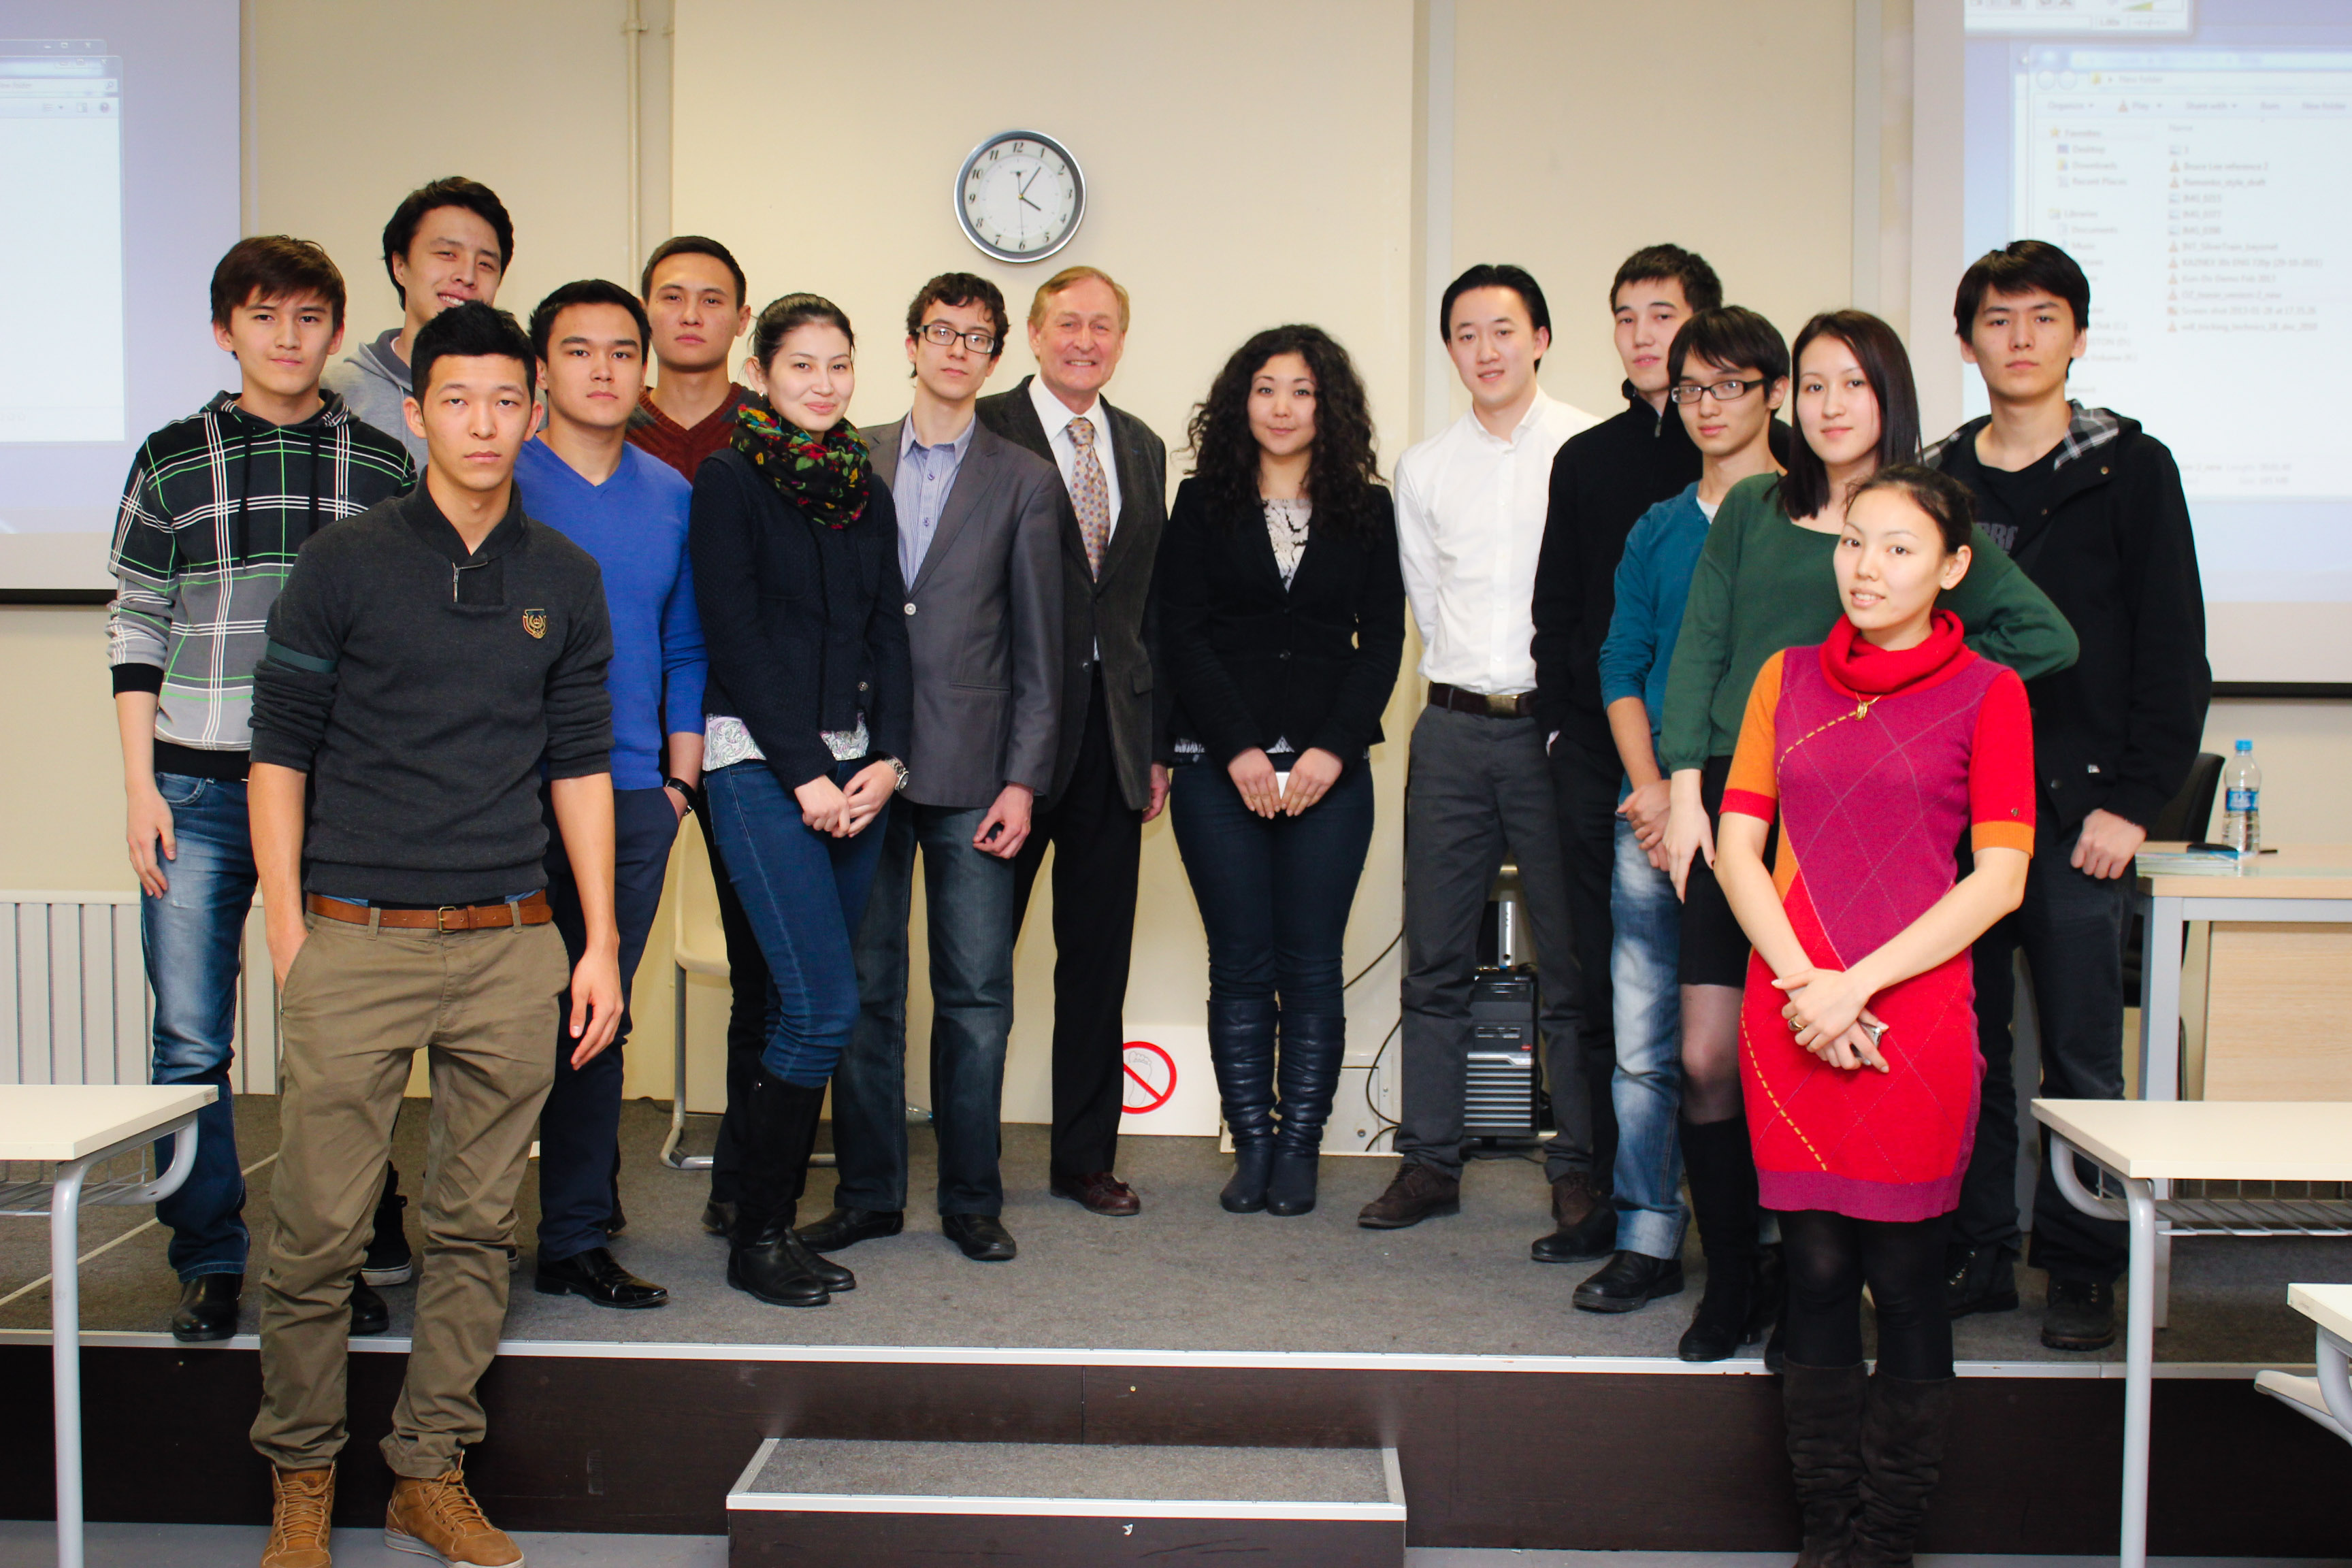 Nazarbayev University students line up for a photo with Igor Tsai. Photo by Damir Doszhan